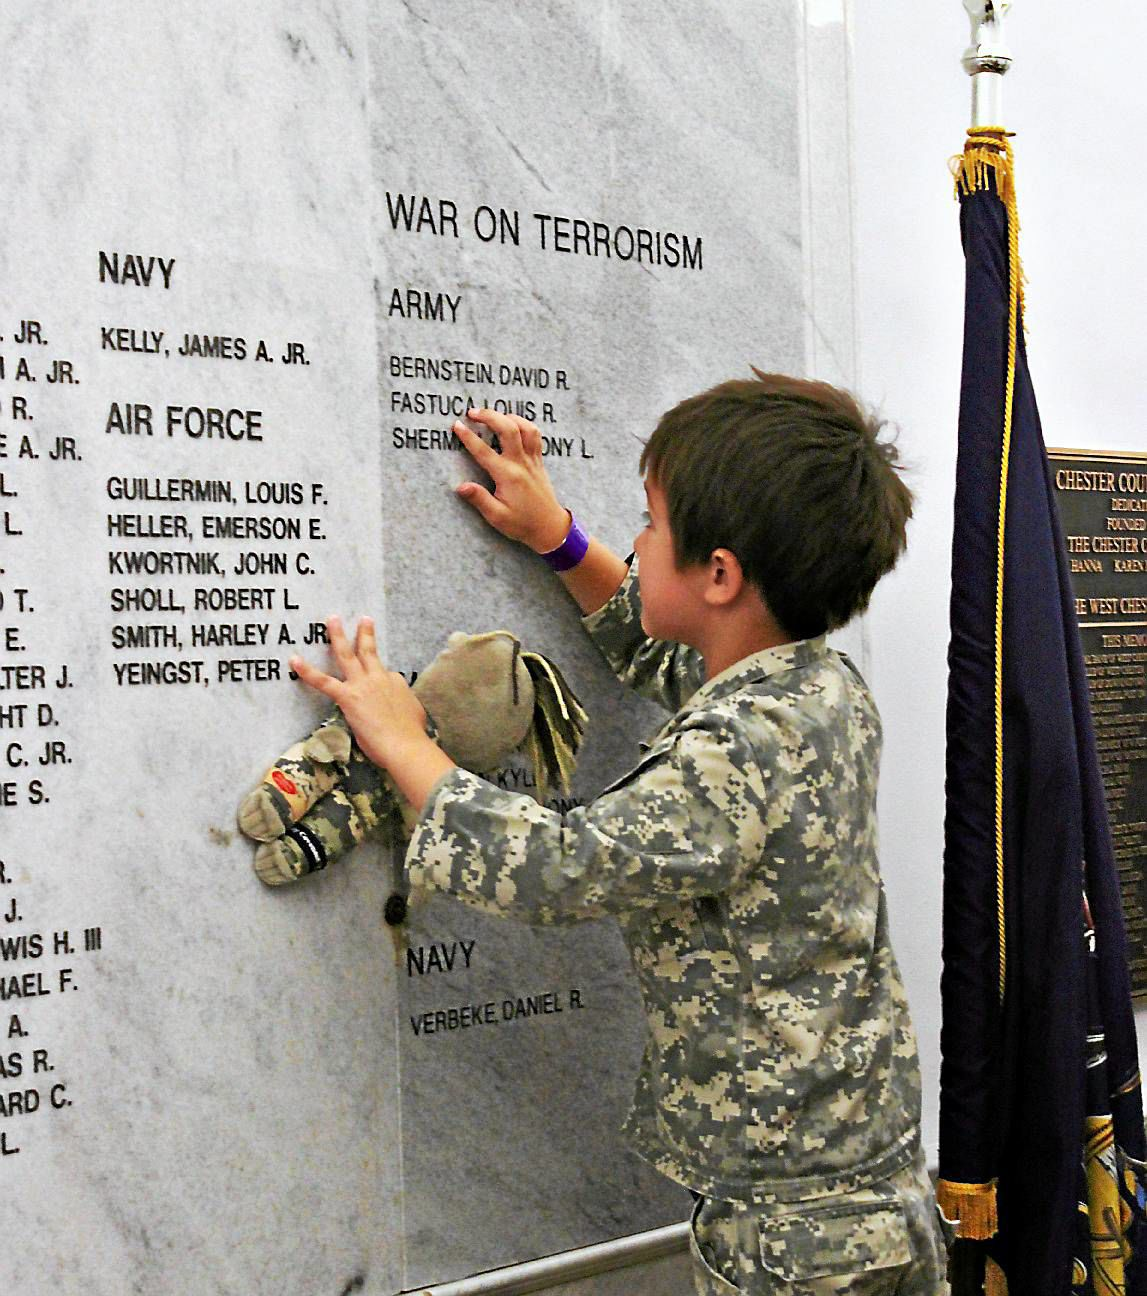 Program makes sure boy remembers his father lost in war